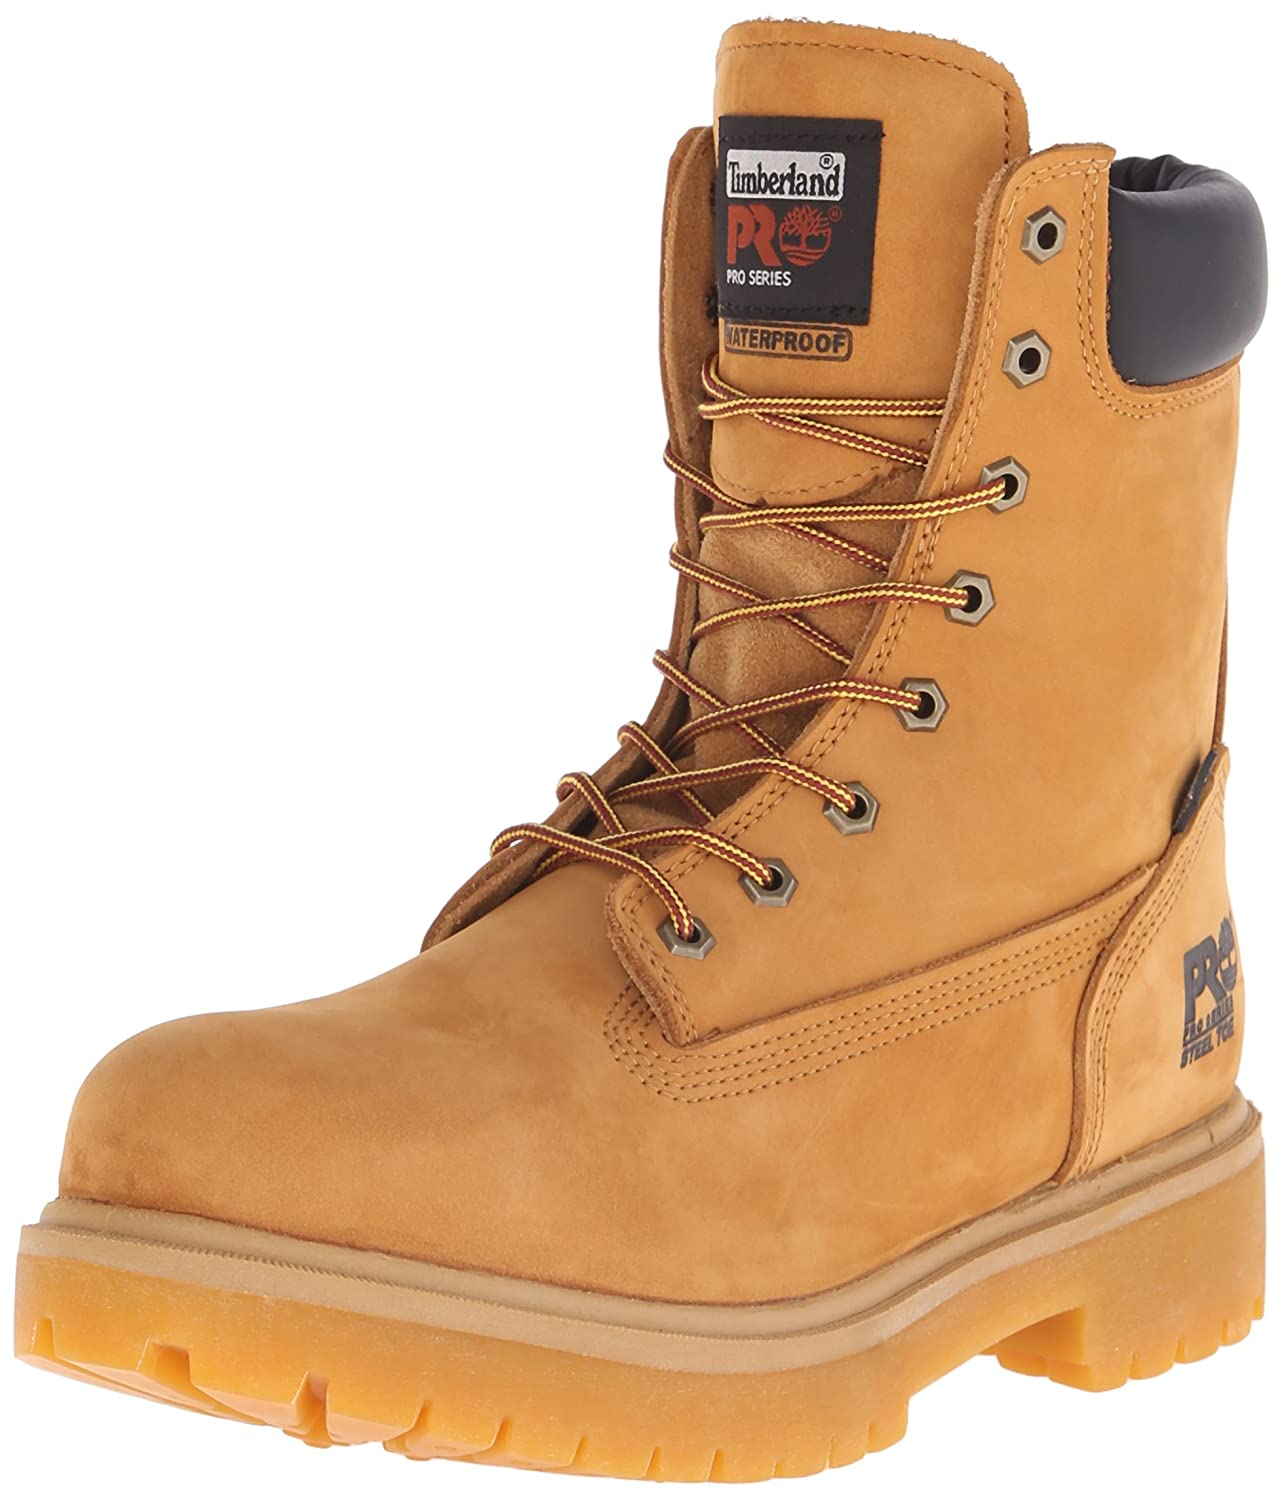 Timberland PRO メンズ B000XF6AWE 11 2E US|Wheat Wheat 11 2E US